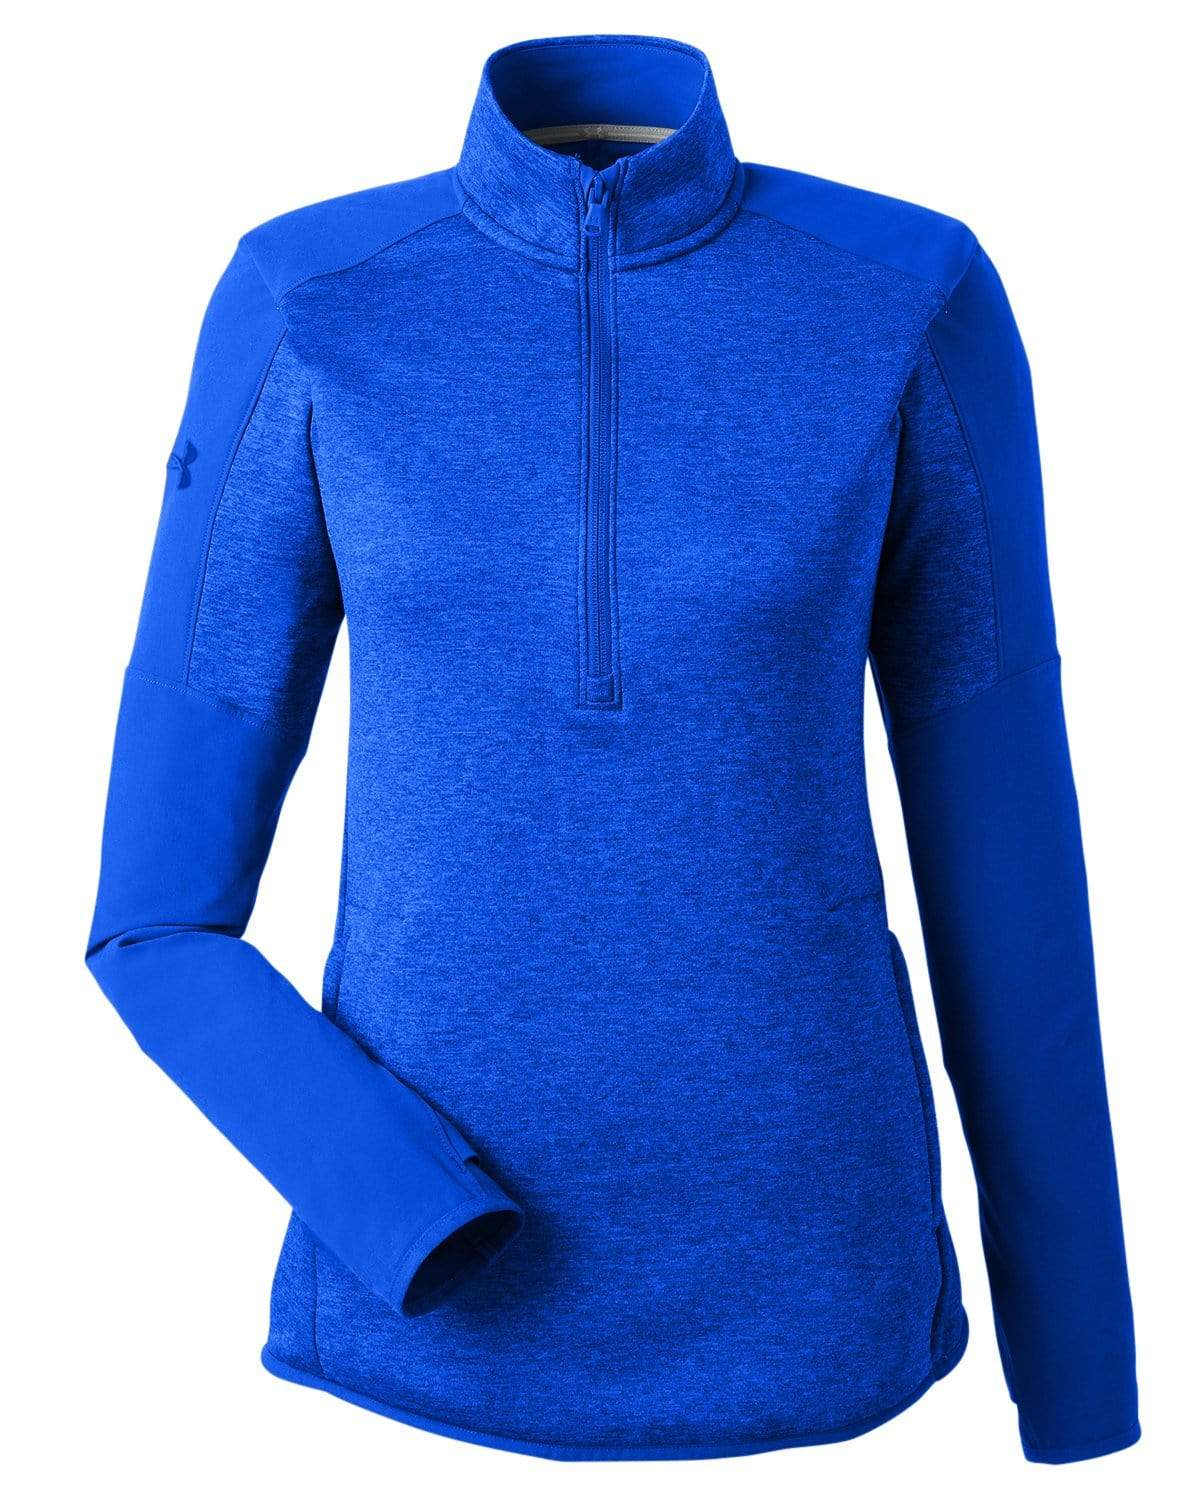 Under Armour Layering XS / Royal Under Armour - Women's Qualifier Hybrid Corporate 1/4 Zip